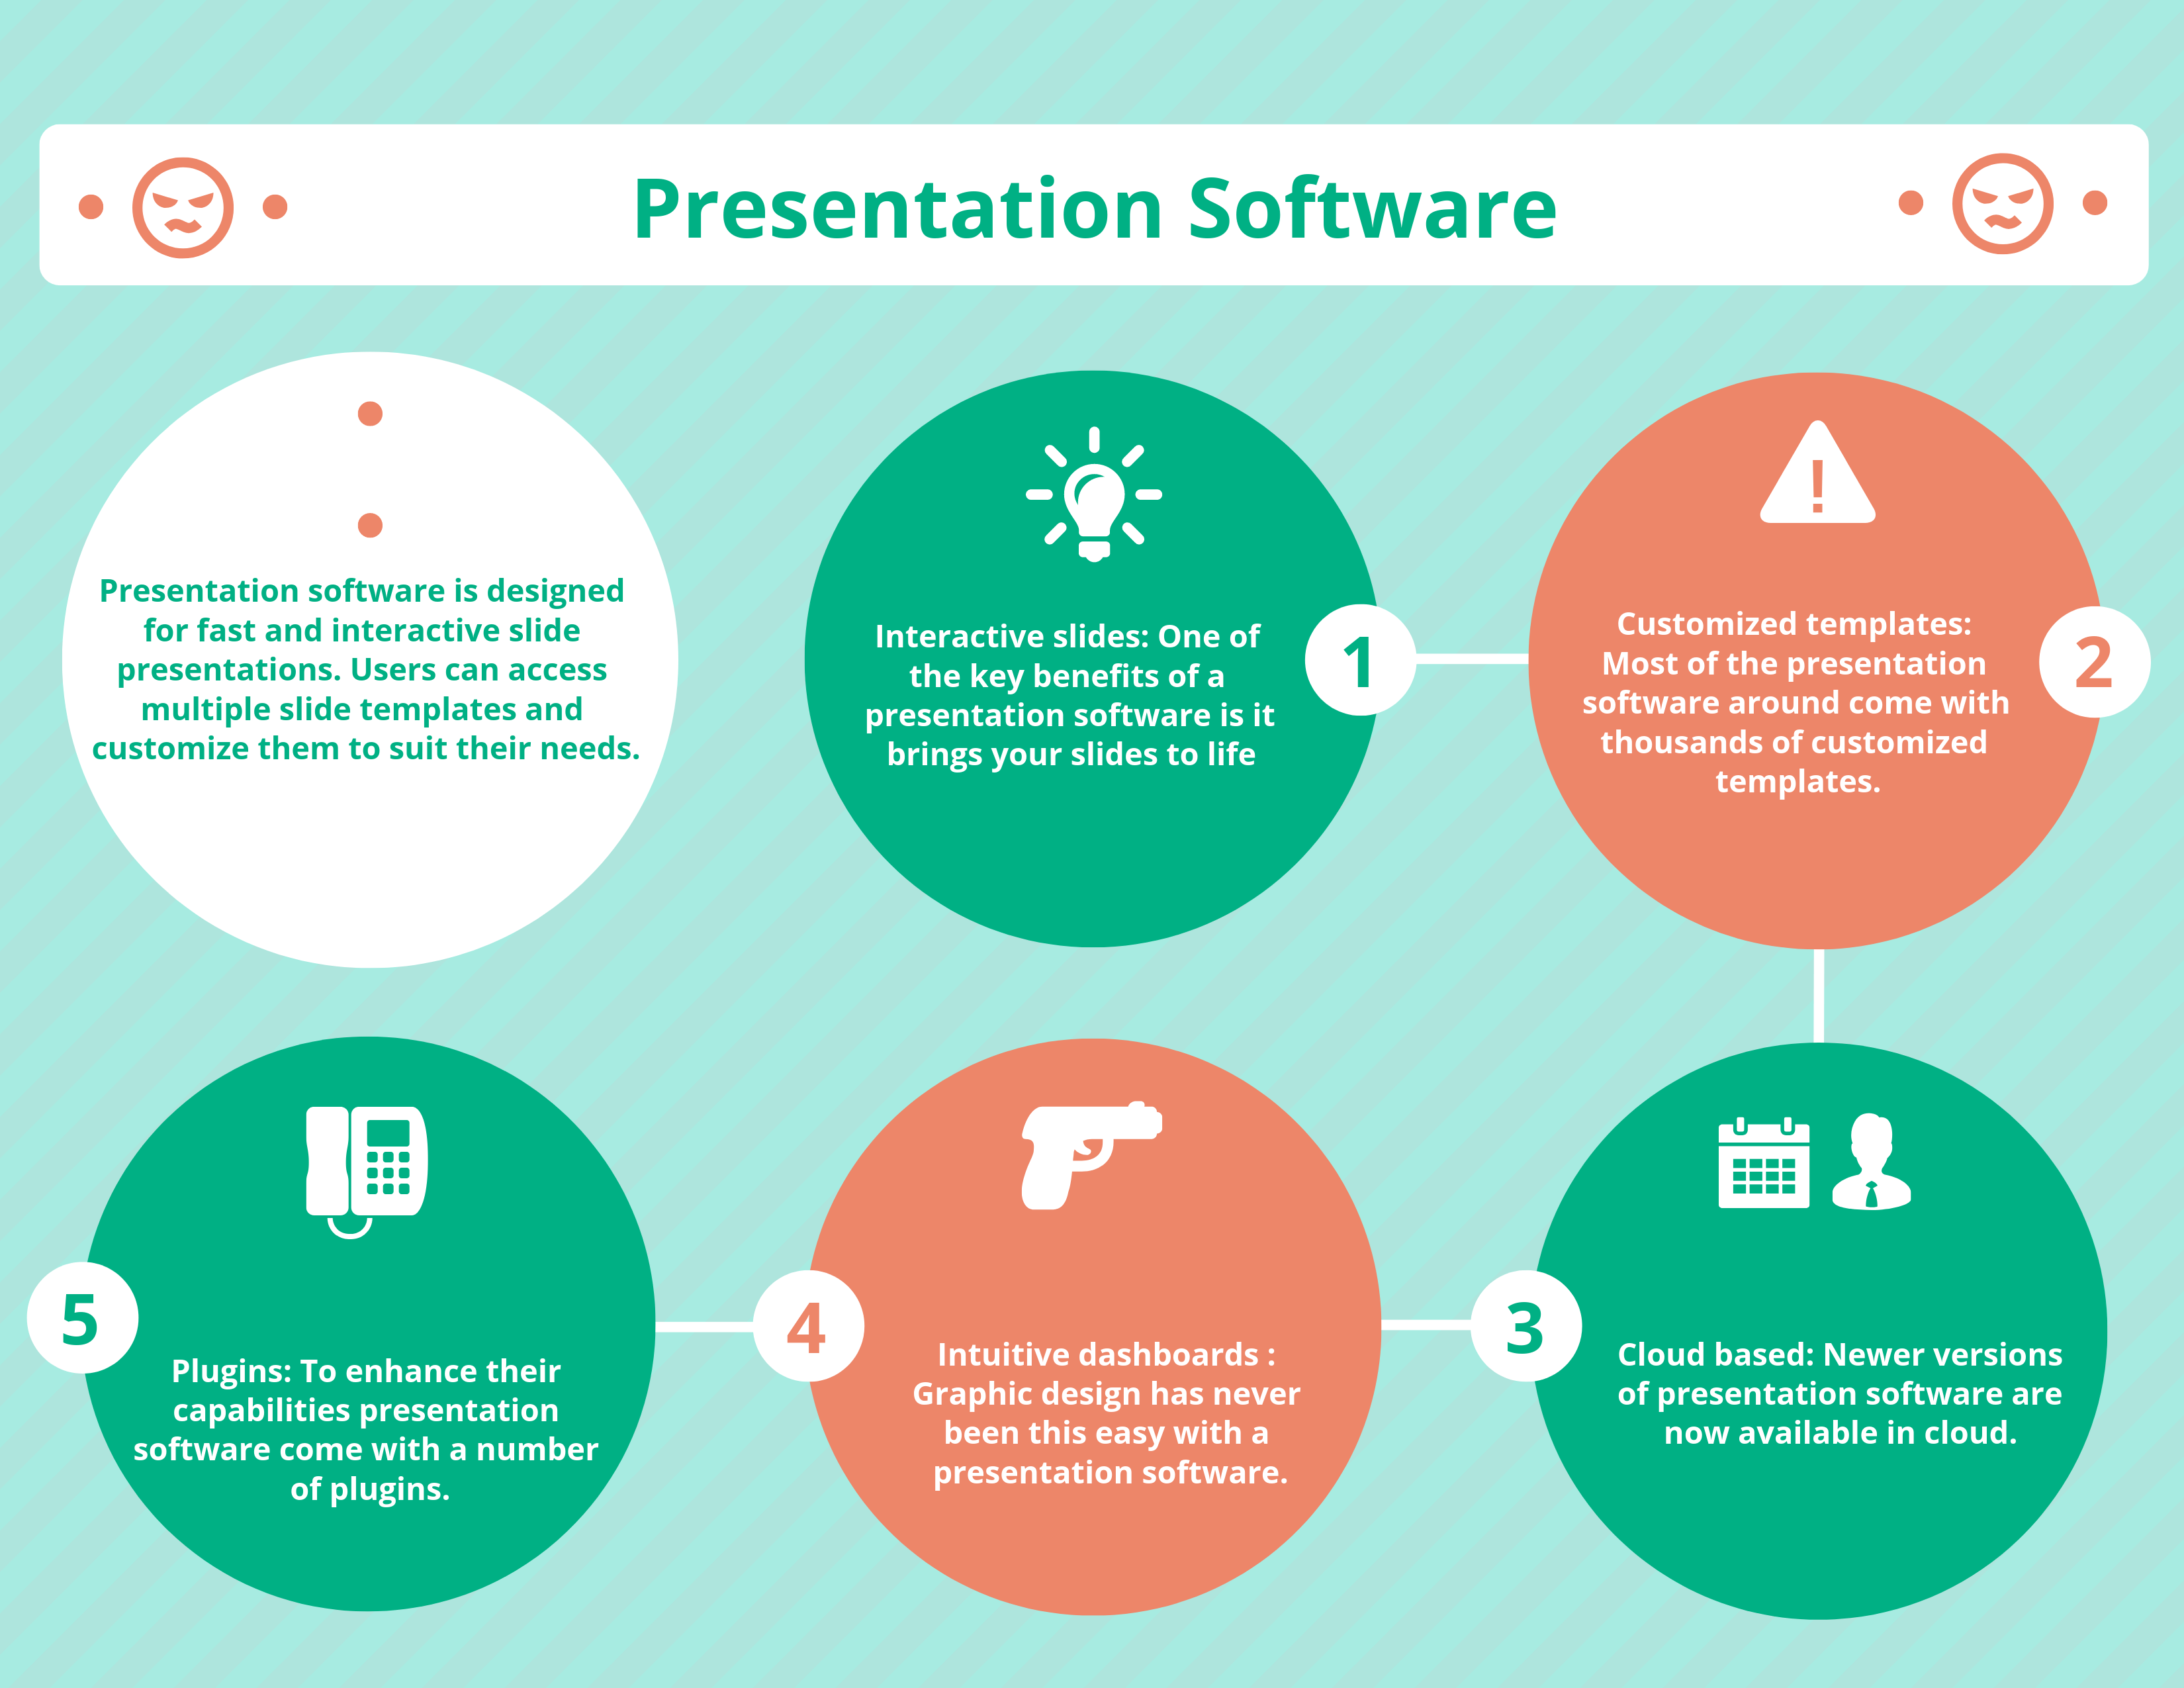 What are the features of Presentation Software